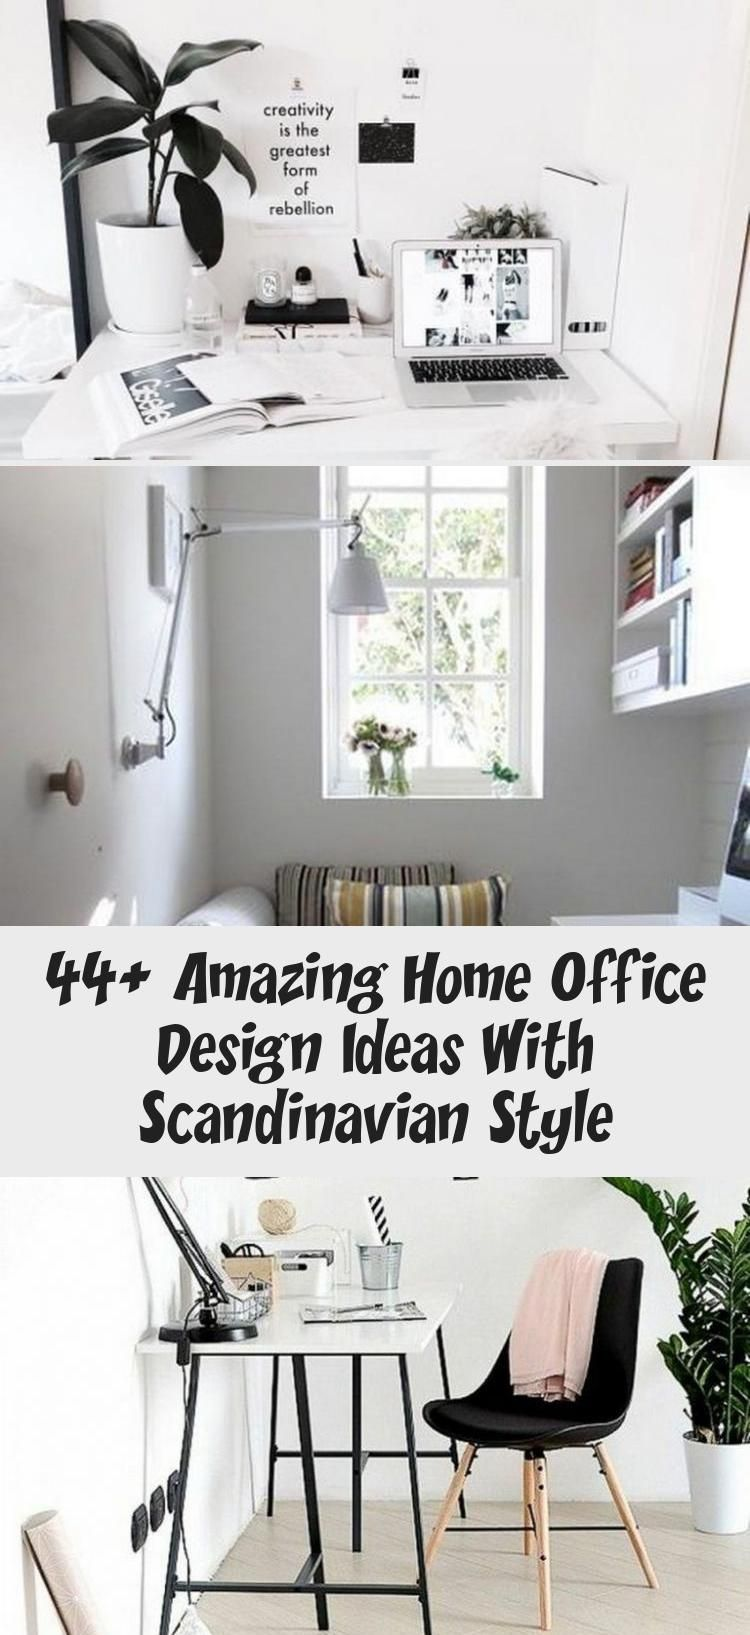 44 Amazing Home Office Design Ideas With Scandinavian Style 44 Amazing Home Office Design Ideas Wit In 2020 Home Office Design Office Design Scandinavian Style Home